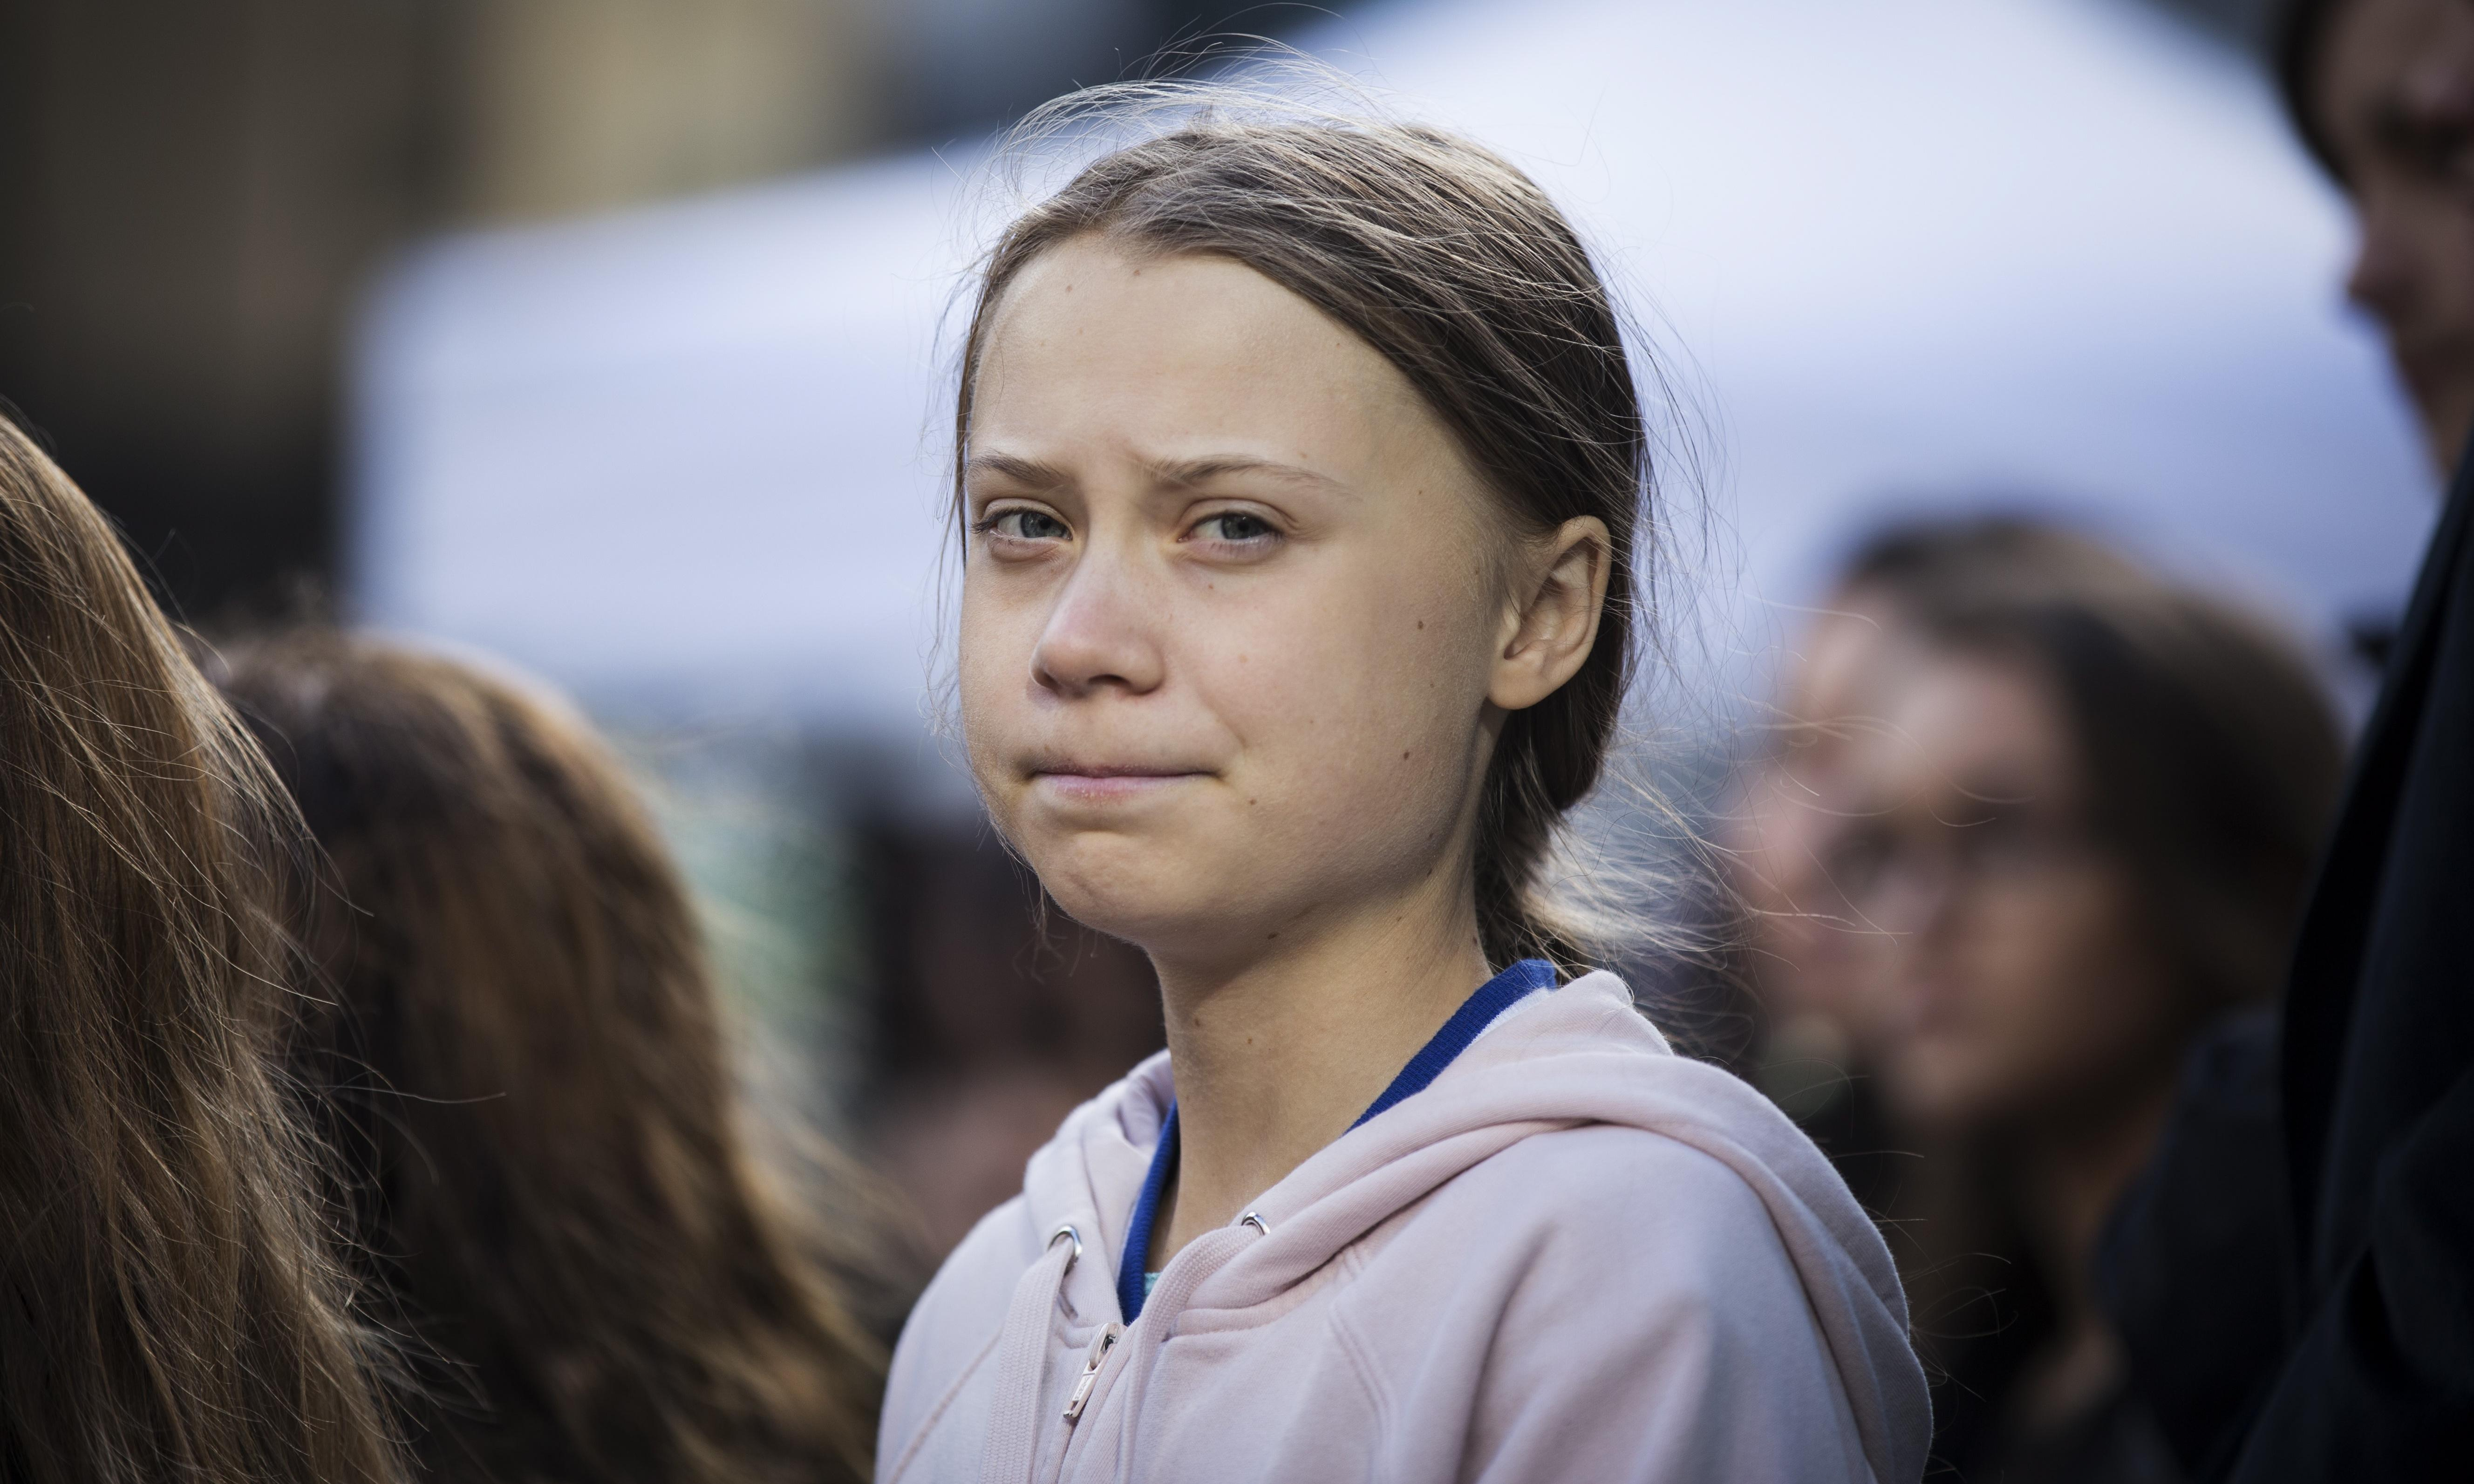 'The climate doesn't need awards': Greta Thunberg declines environmental prize